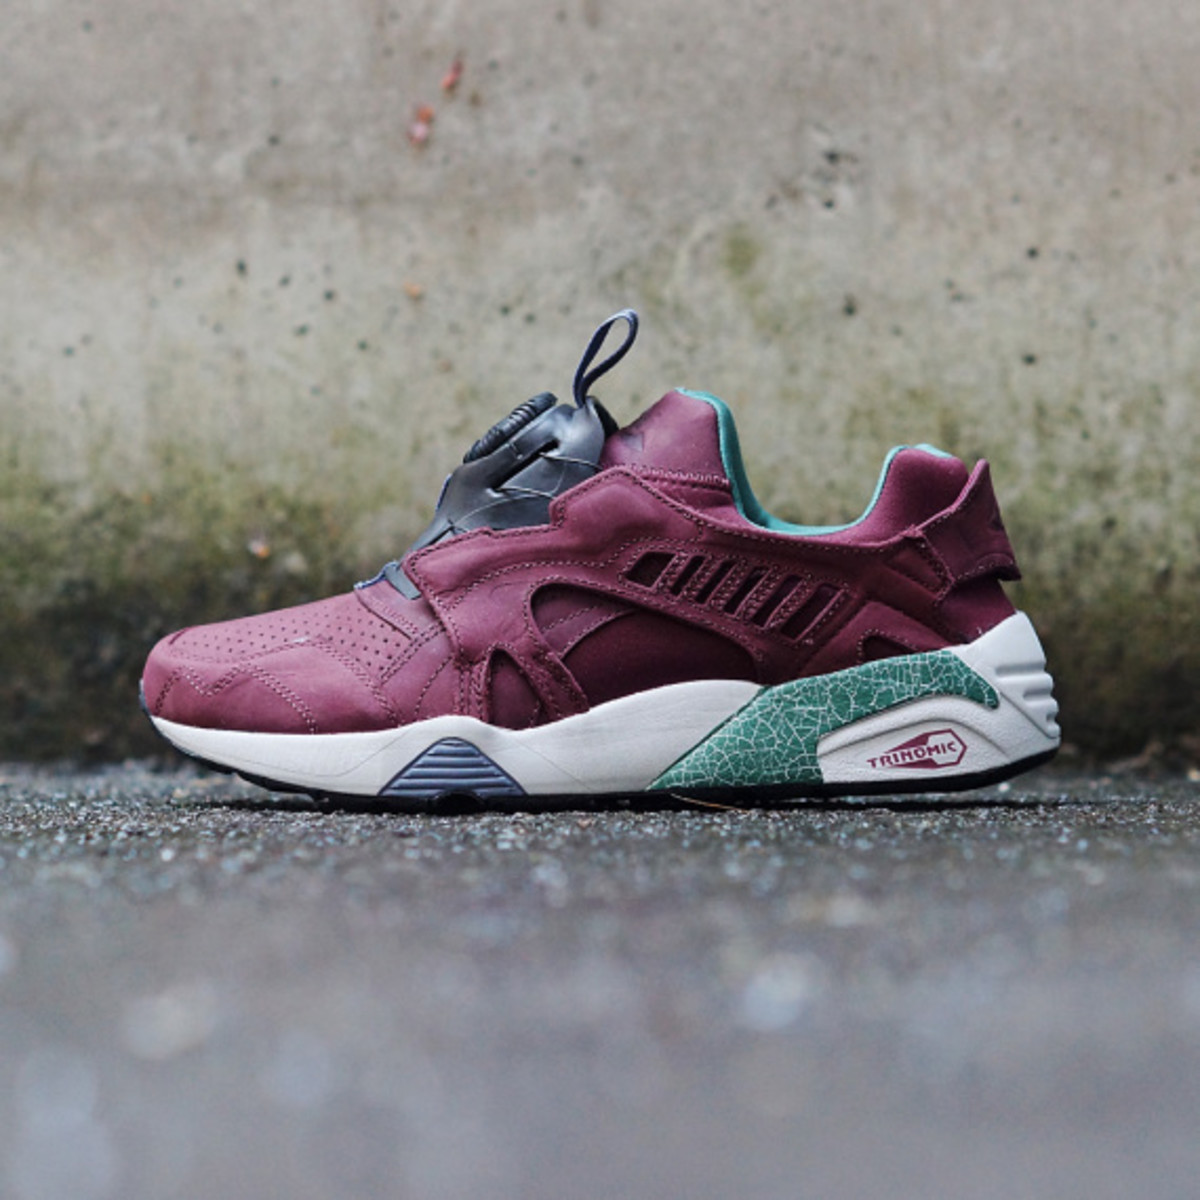 puma-disc-blaze-crackle-pack-02